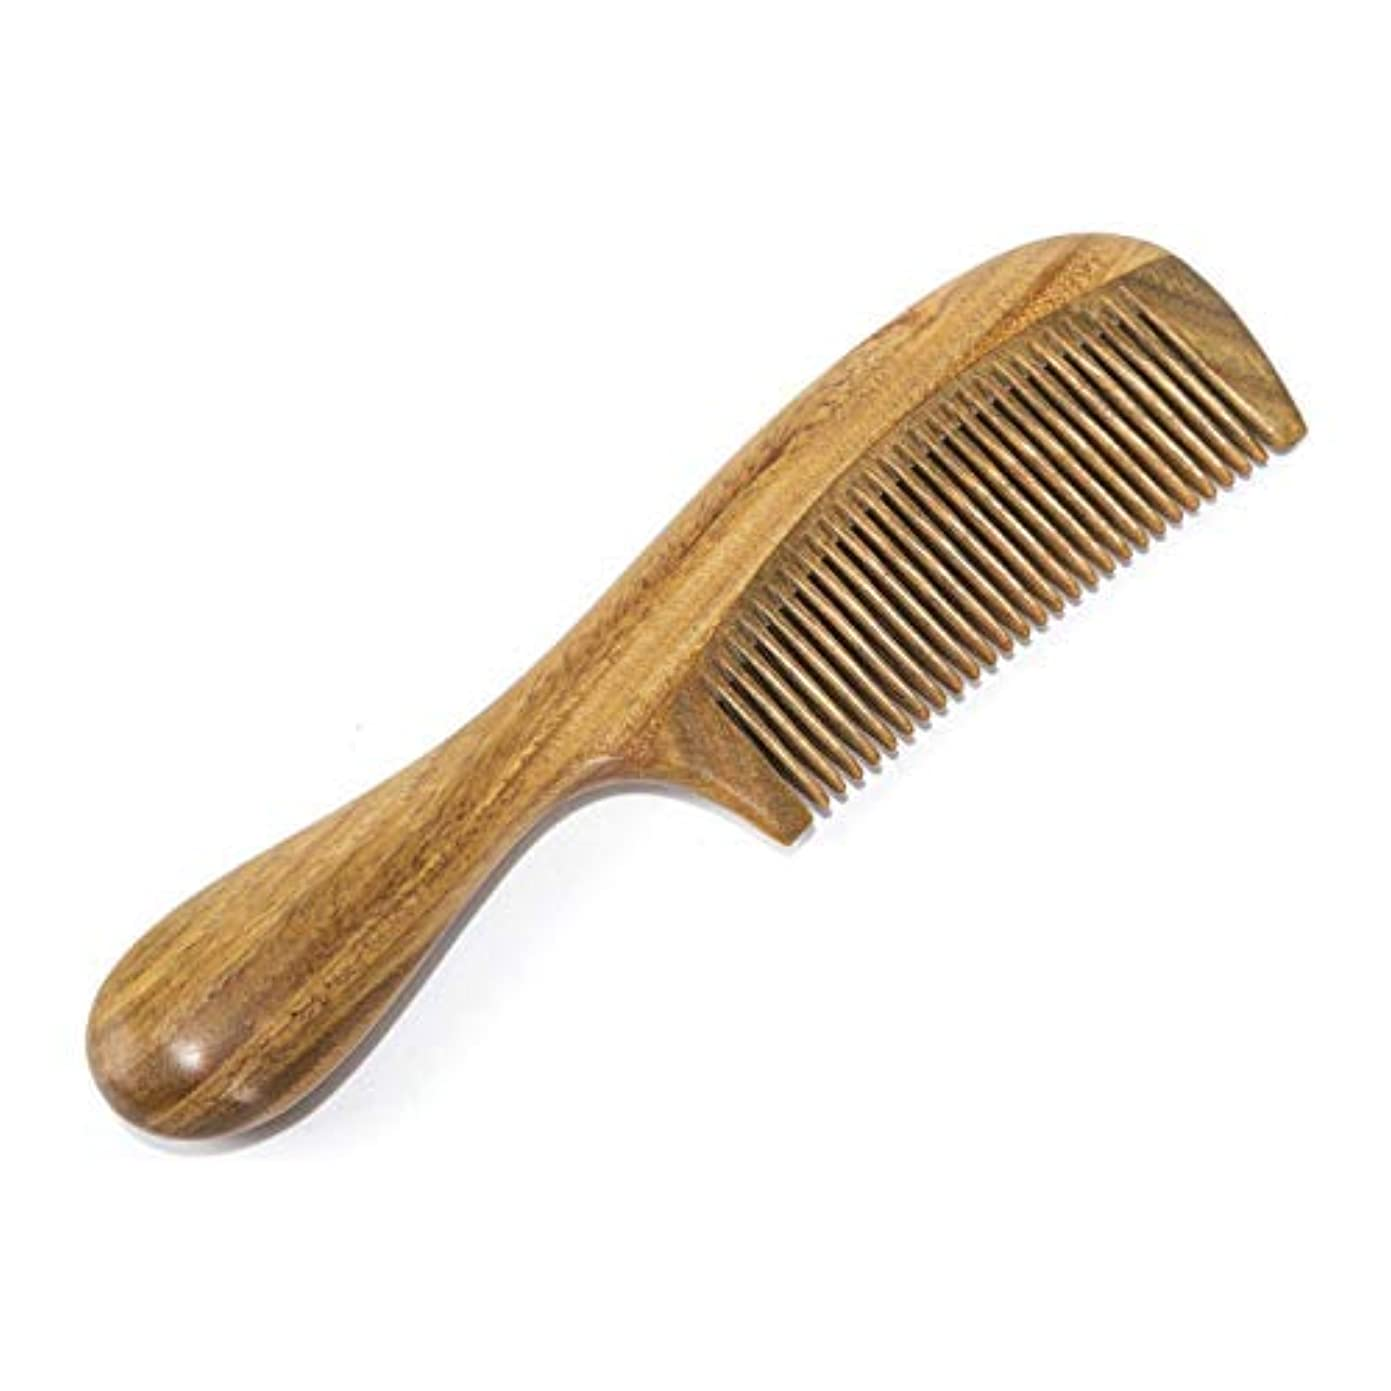 バスタブ亡命迷惑BEINY Natural Green Sandalwood Comb - Anti Static Wooden Hair Comb with Thickening Round Handle for Hair Health...